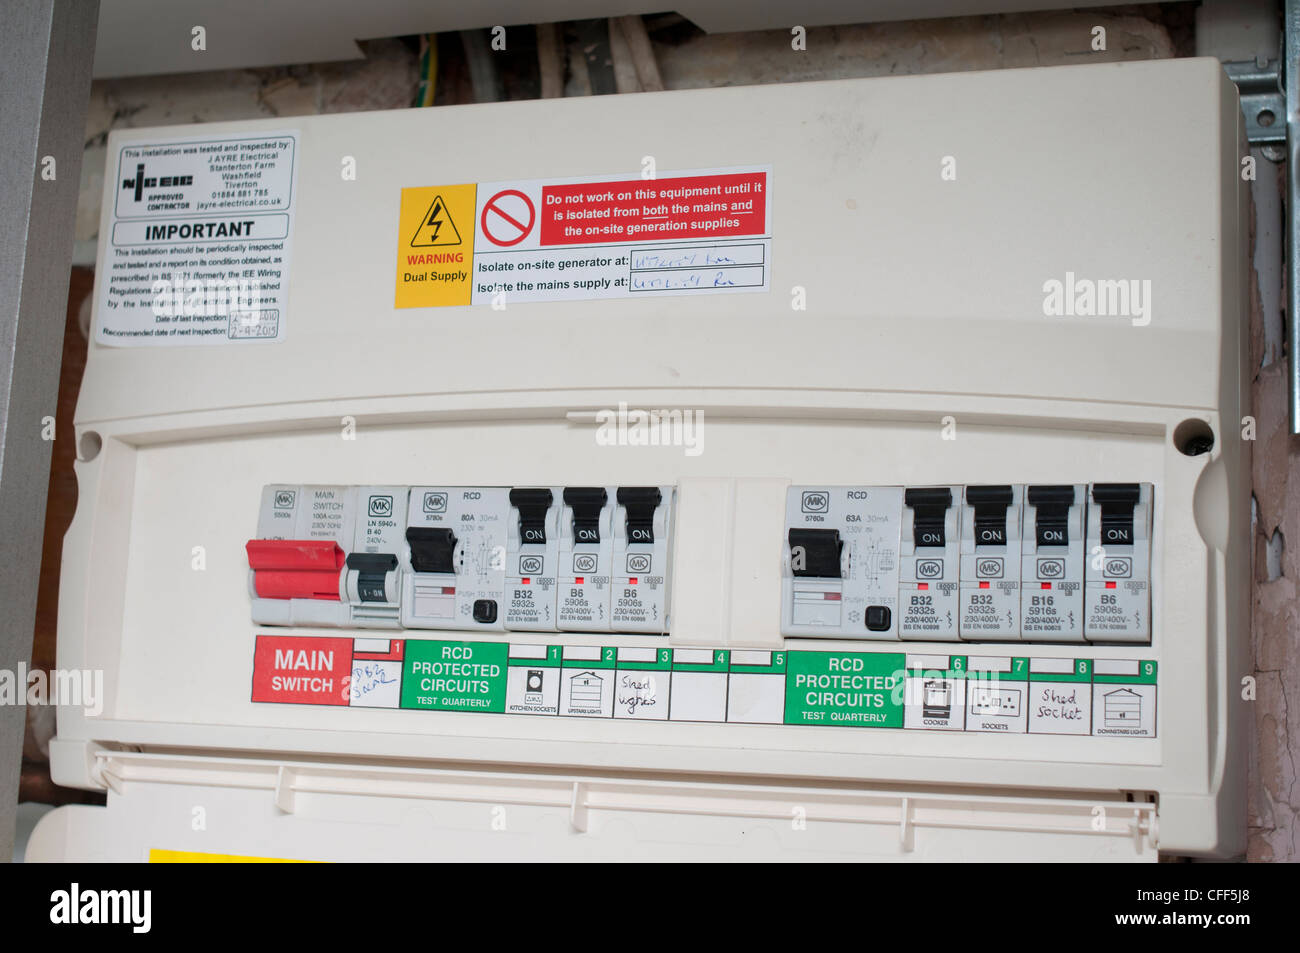 domestic fuse box CFF5J8 fuse box in house how to change a fuse in a breaker box \u2022 wiring cost of converting fuse box to circuit breakers at mifinder.co